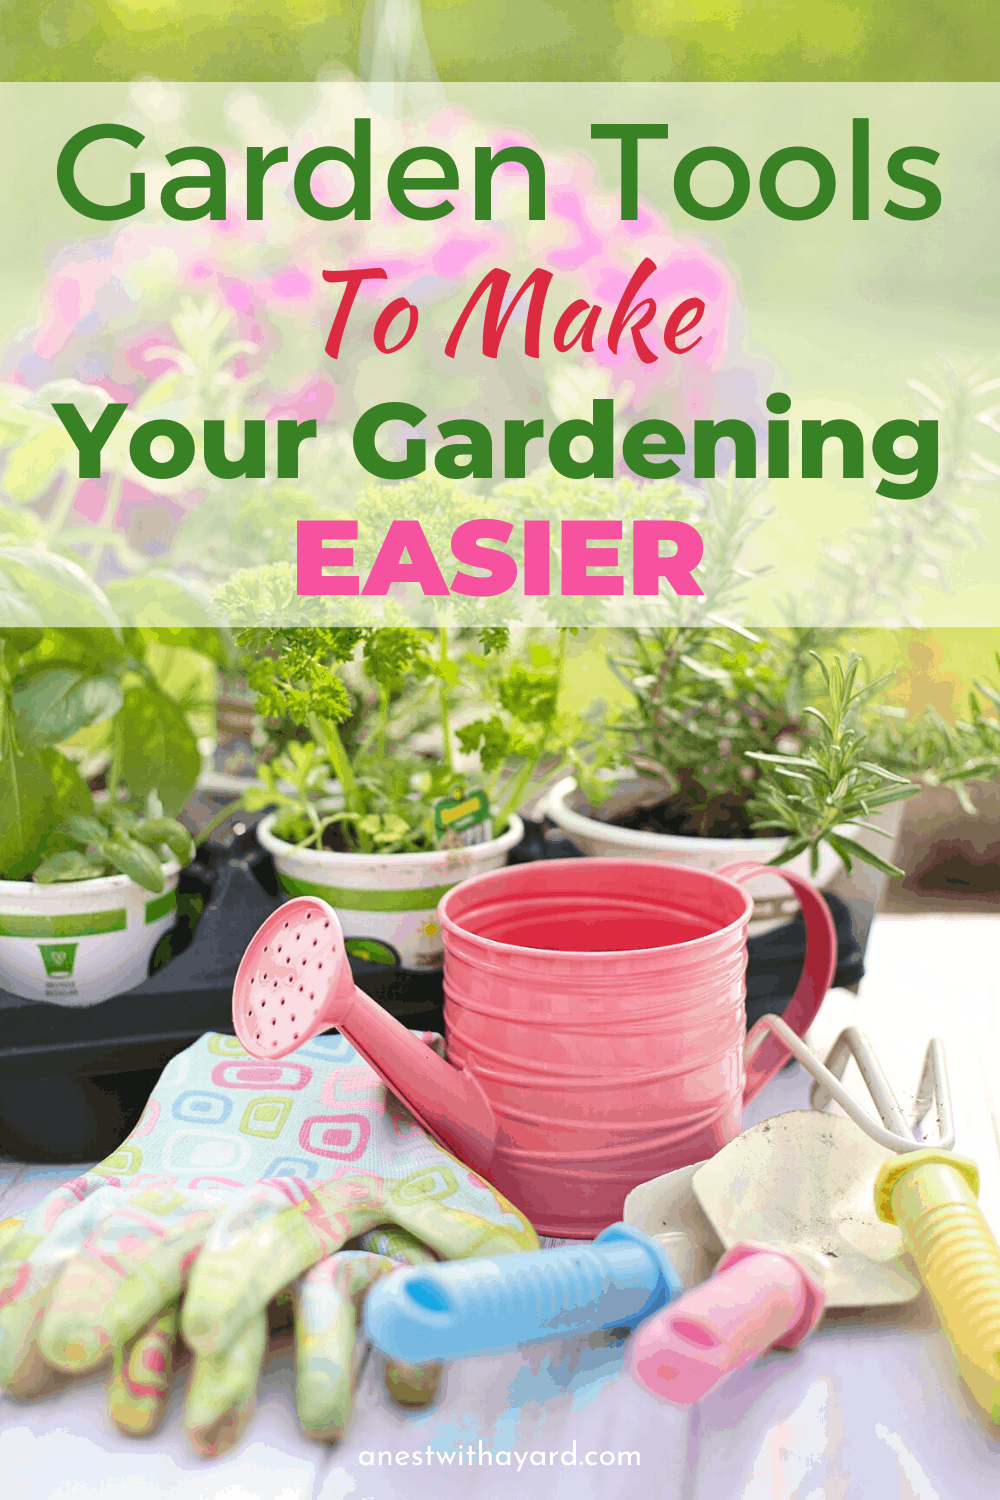 Tools for Easy Gardening